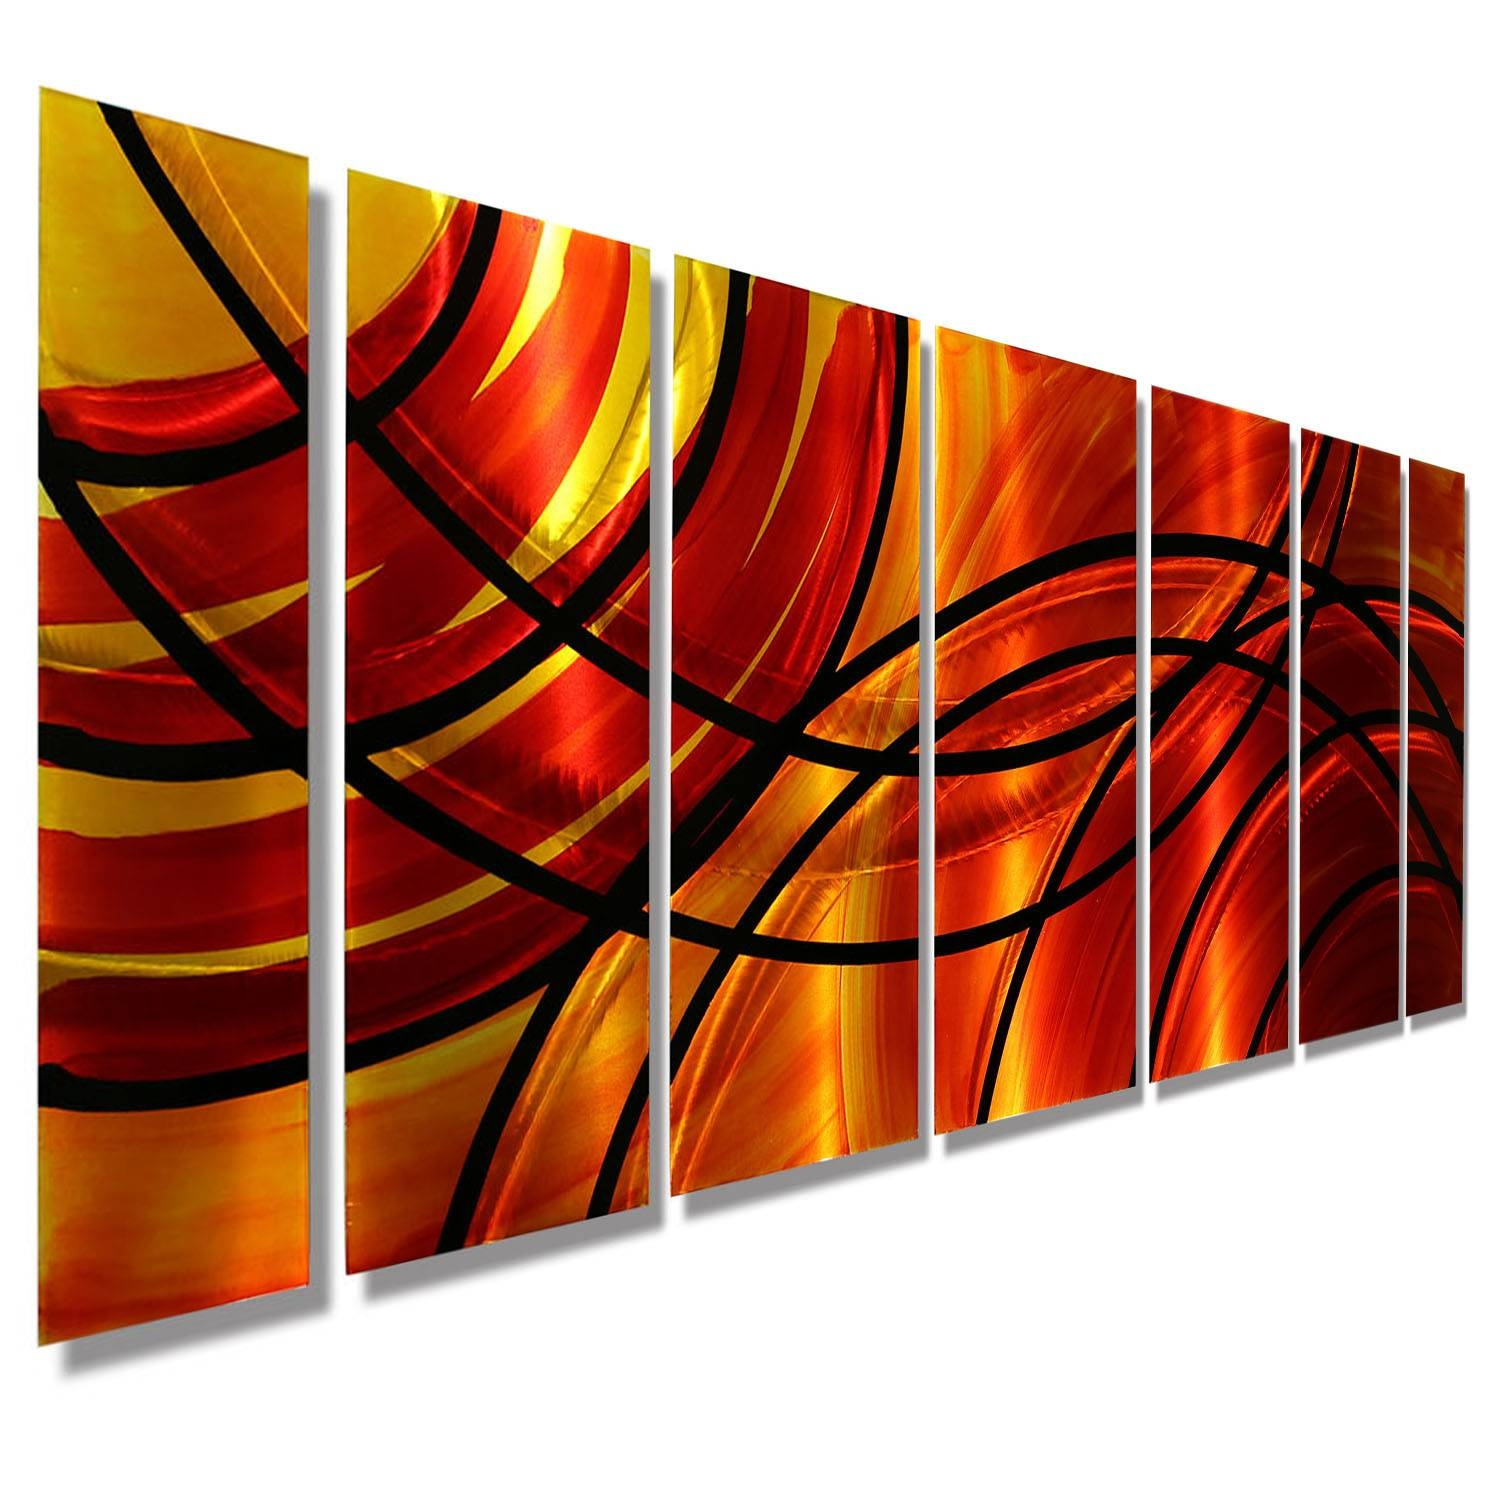 Boundfire – Red & Orange Modern Metal Wall Artjon Allen Inside Most Up To Date Metallic Wall Art (View 4 of 25)